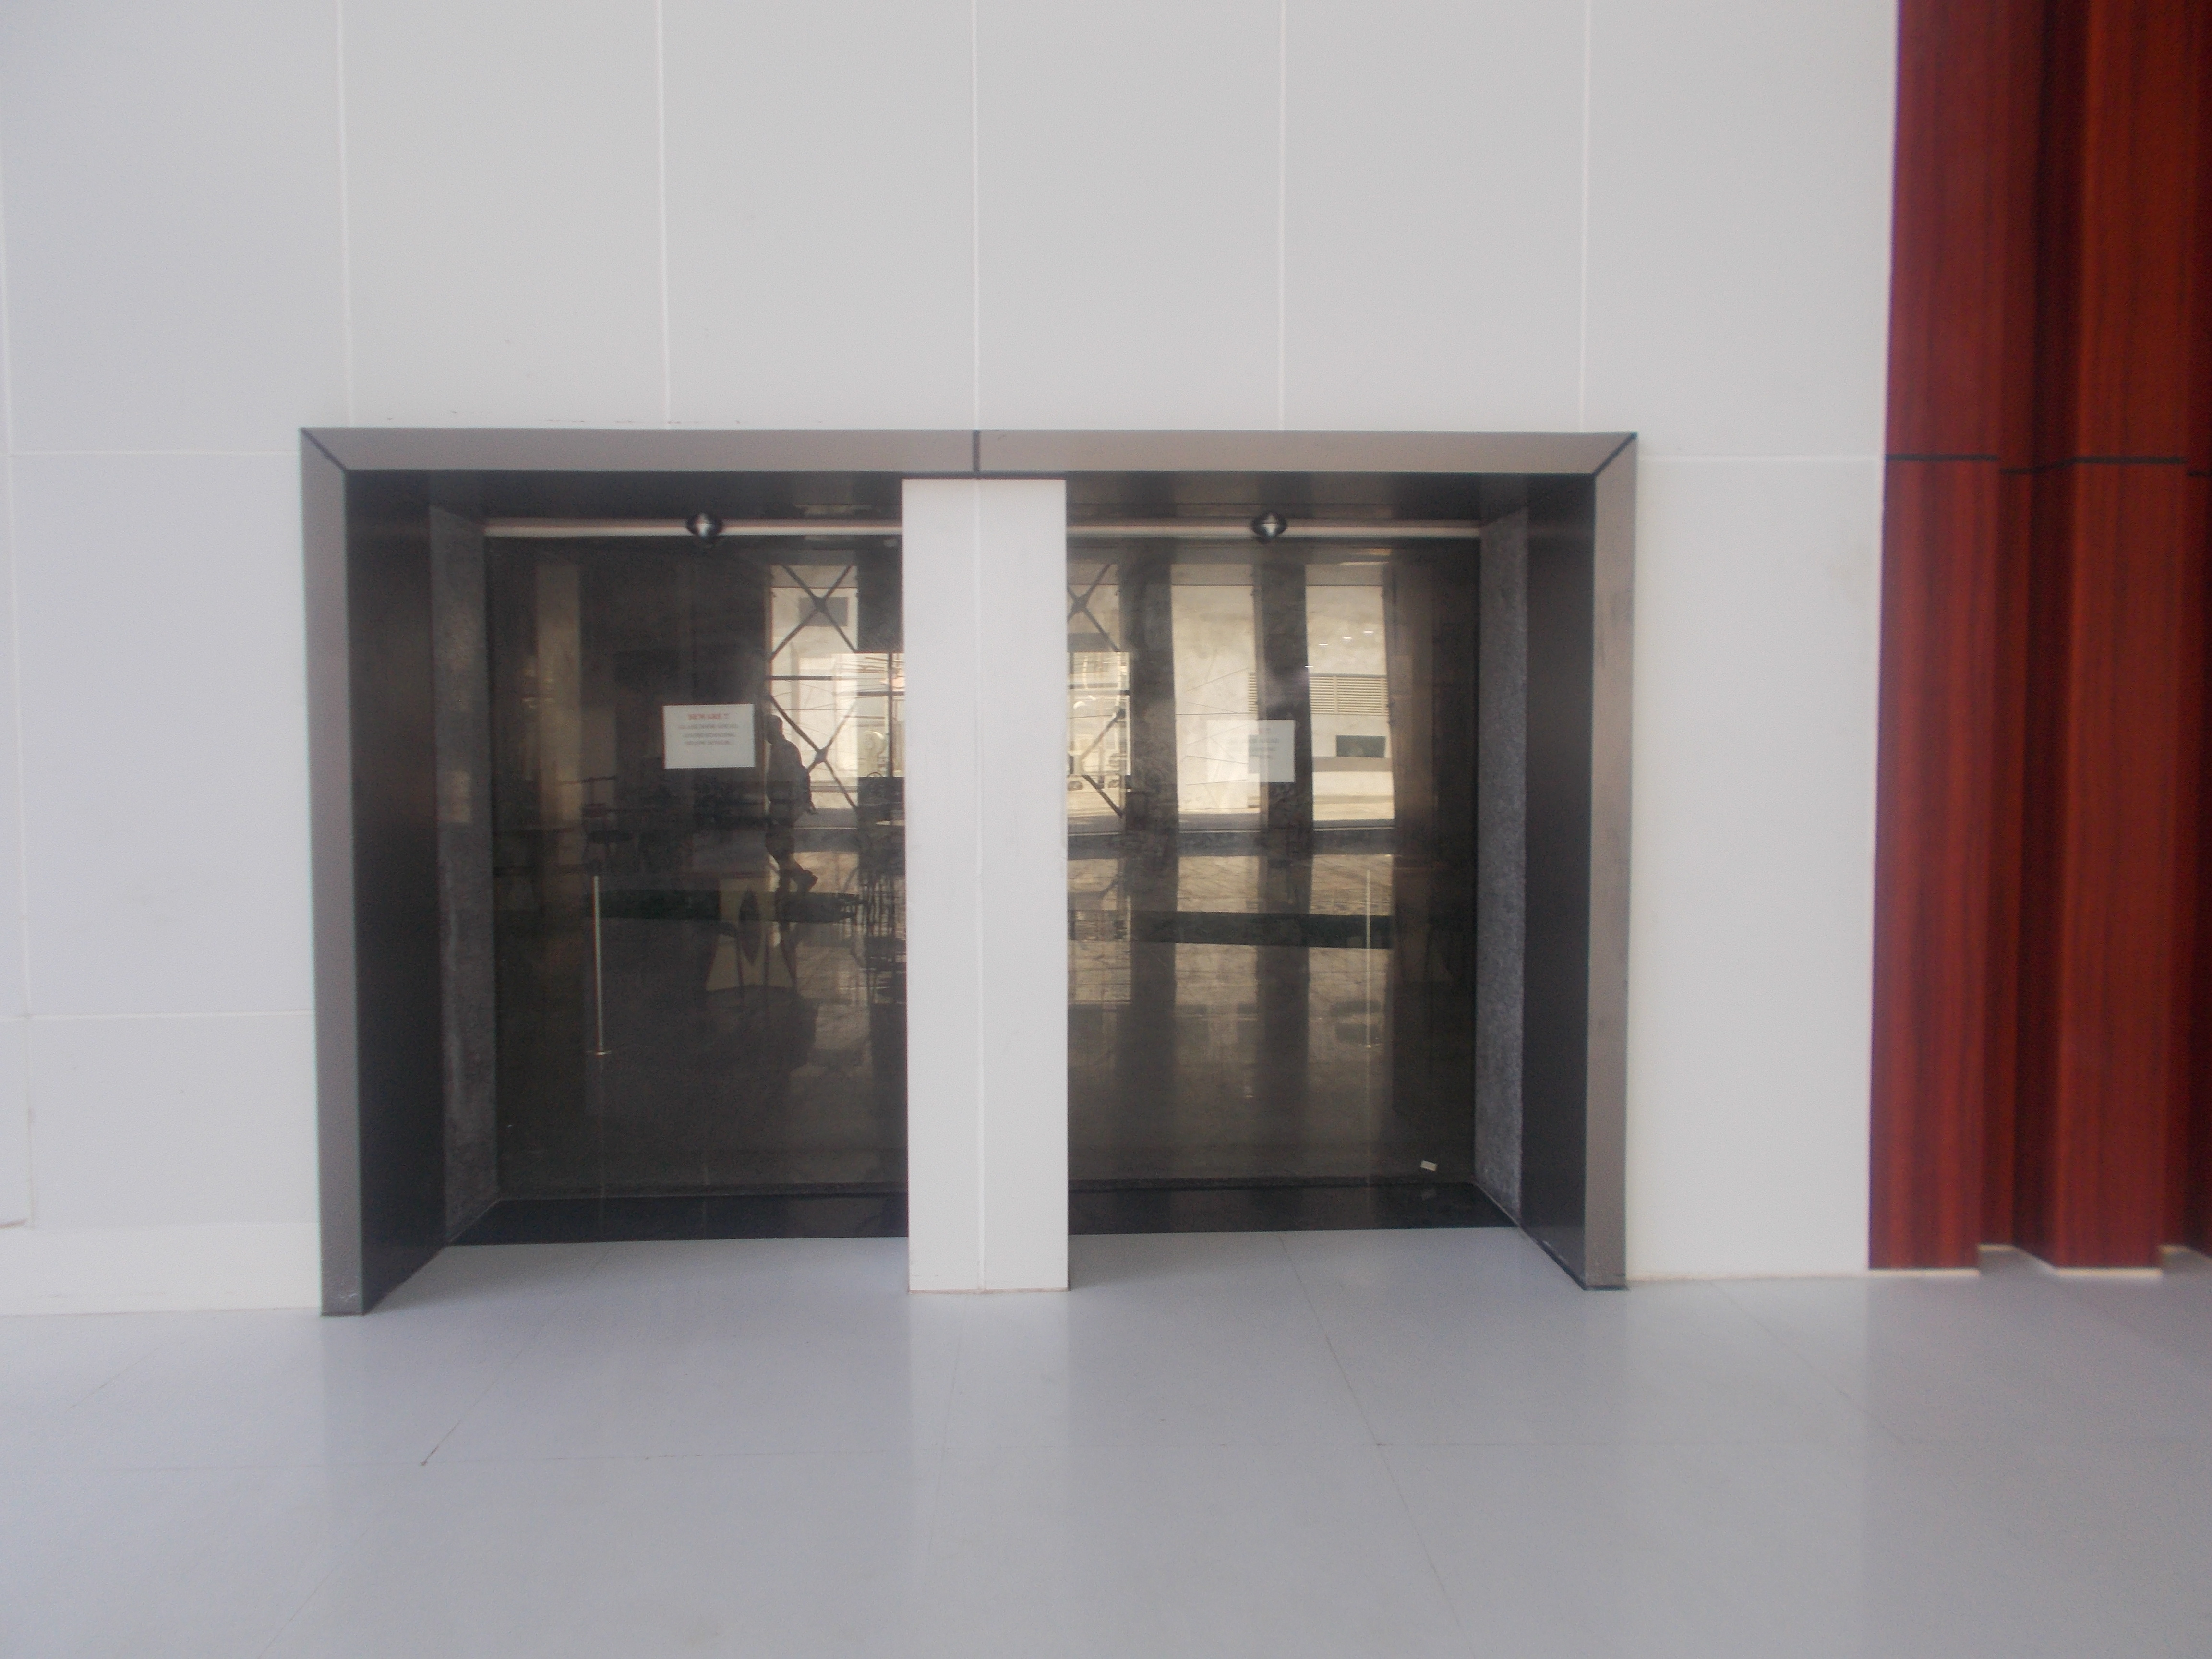 14. Entrance automated glass door